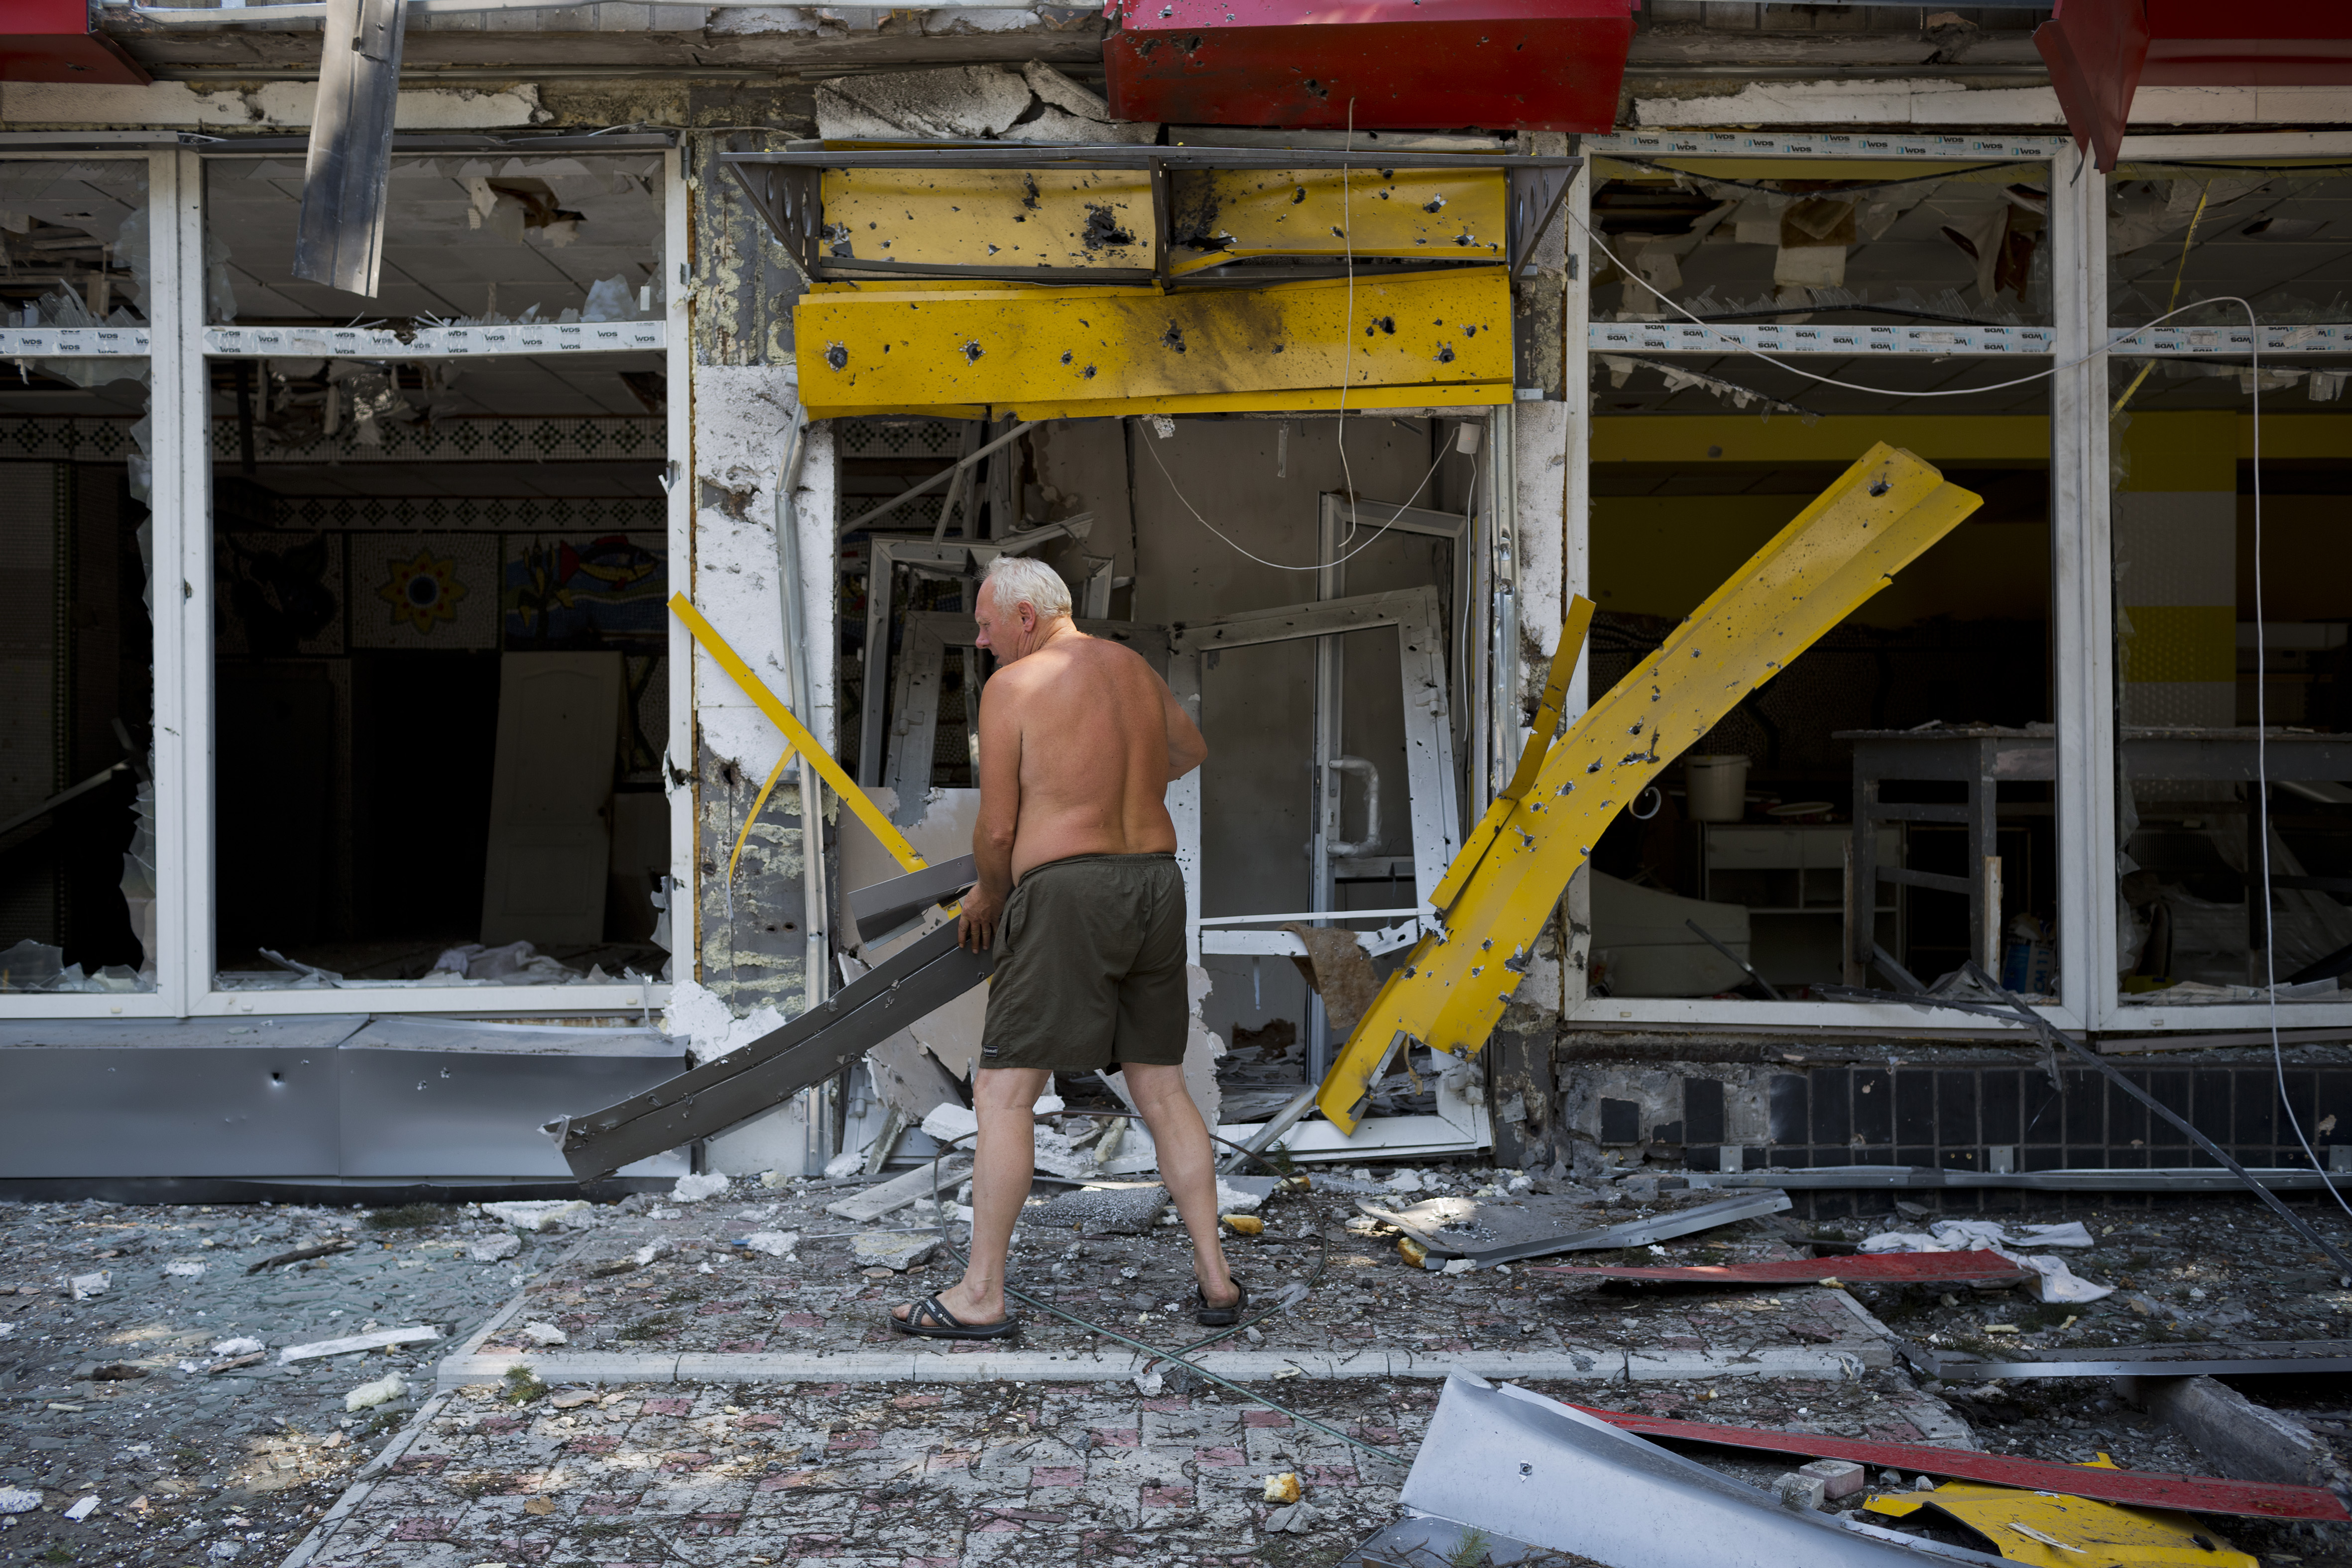 A man clears debris as the Ukrainian army retakes a village from pro-Russian rebels onAugust 13, 2014 in Uglegorsk. Ukraine.